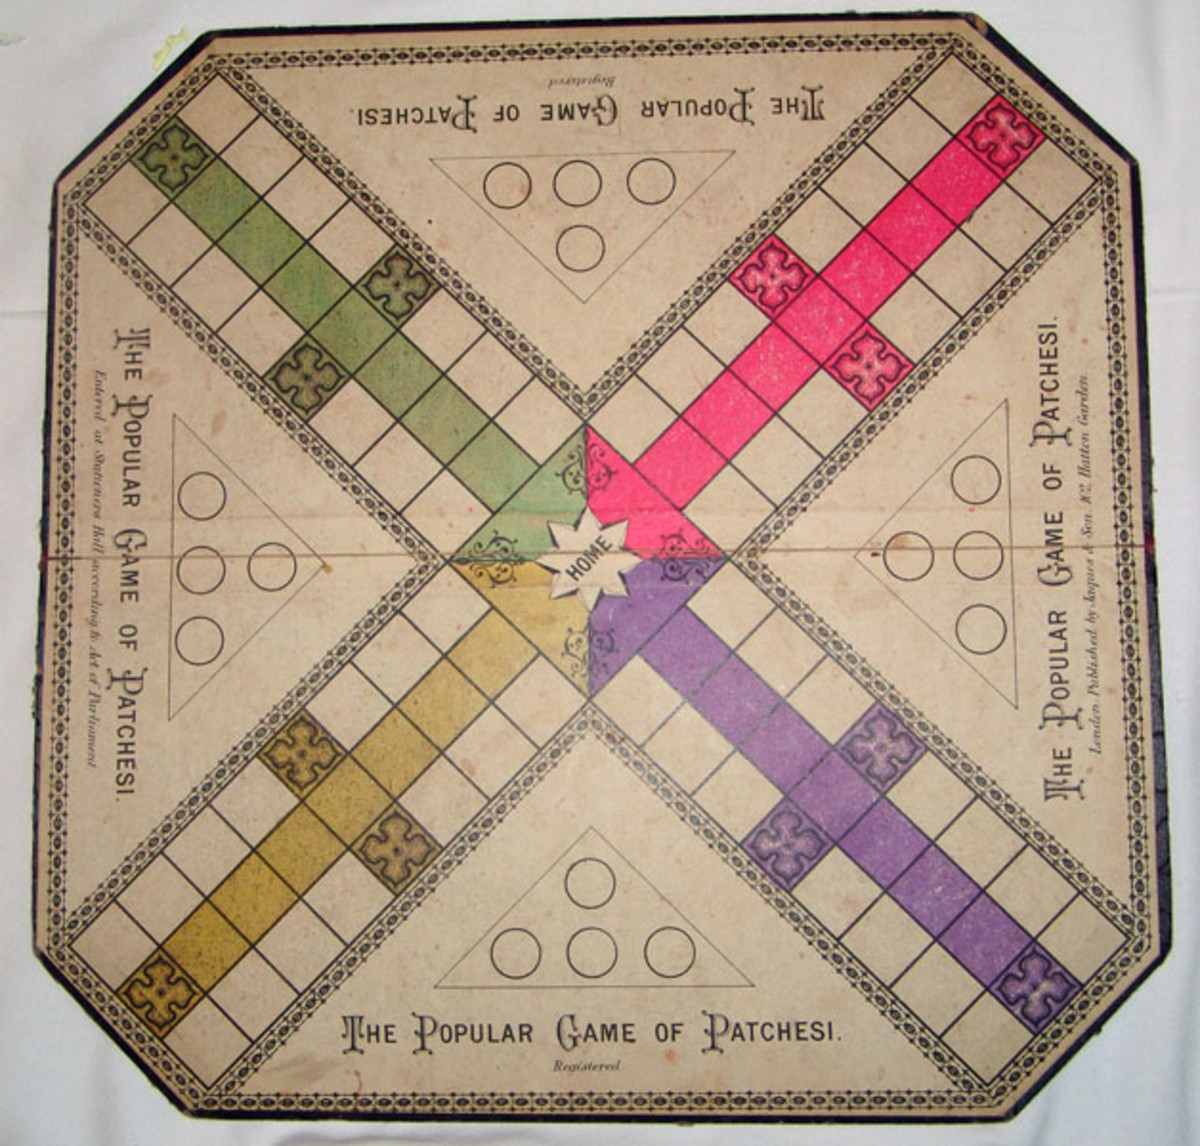 Pachisi regras rival 22132